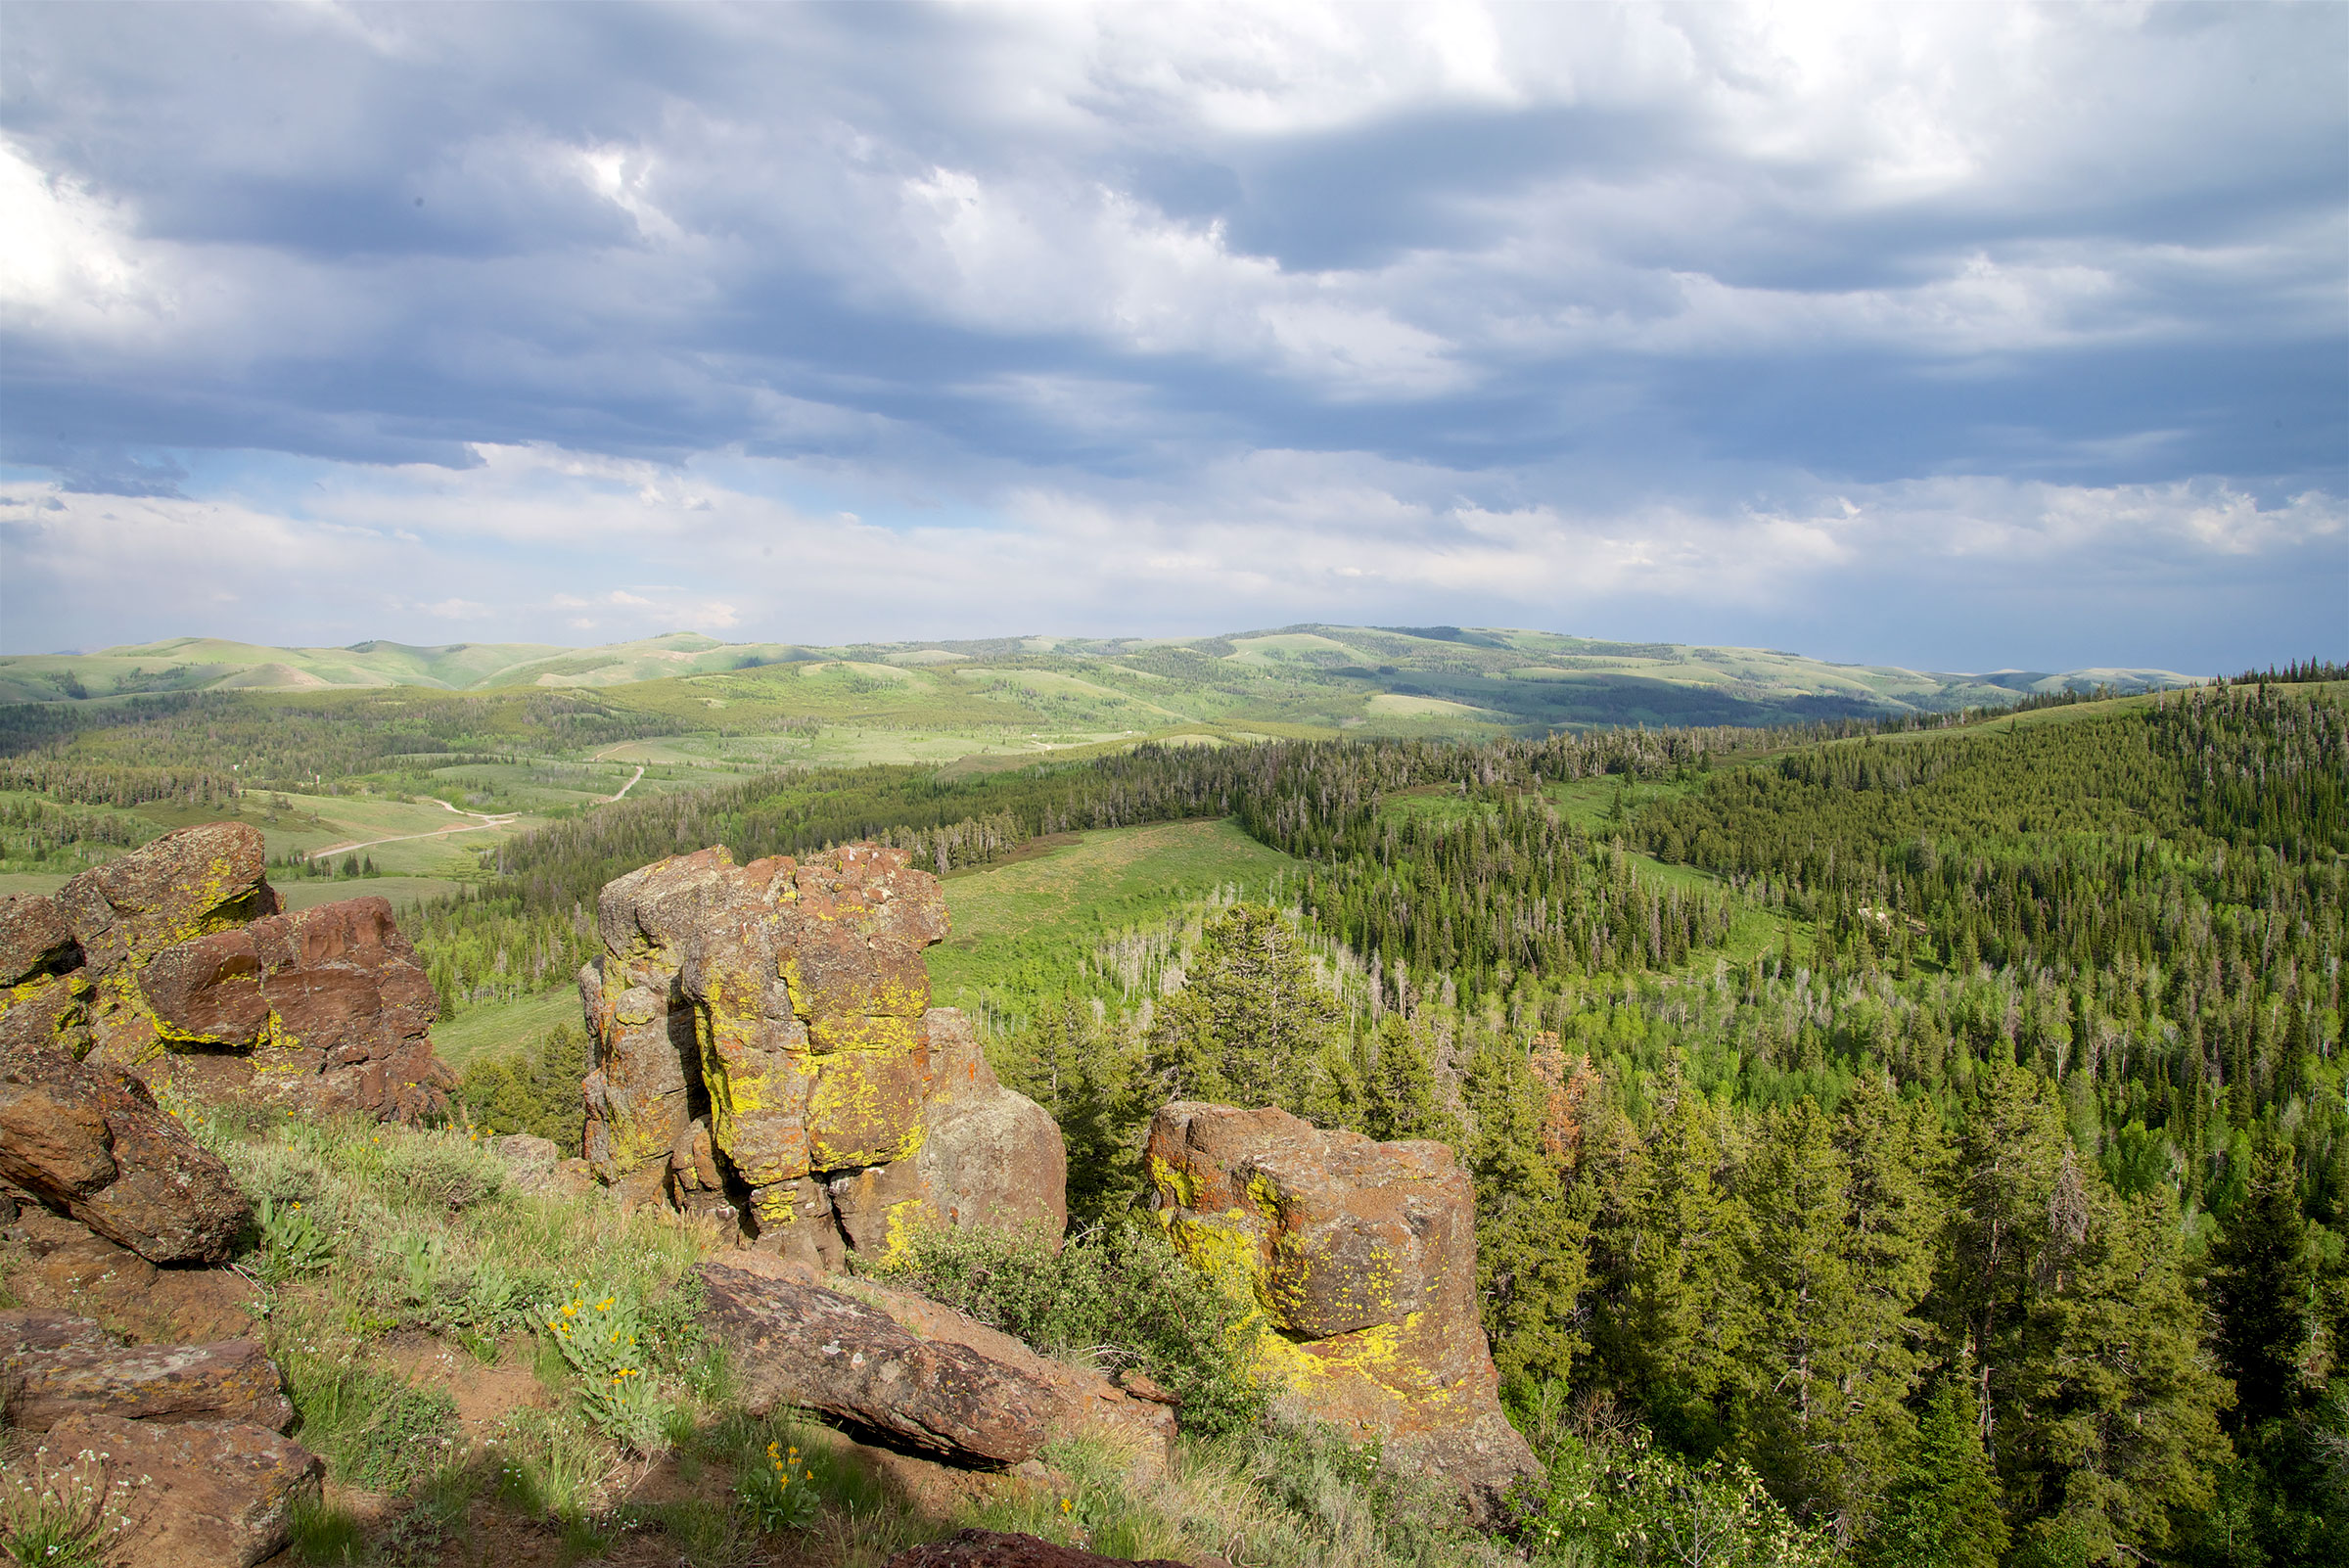 A landscape shot of rolling, green hills dominated by stands of lodgepole pine trees, with some sagebrush prairie intermixed, in South Hills, Idaho. Craig Benkman